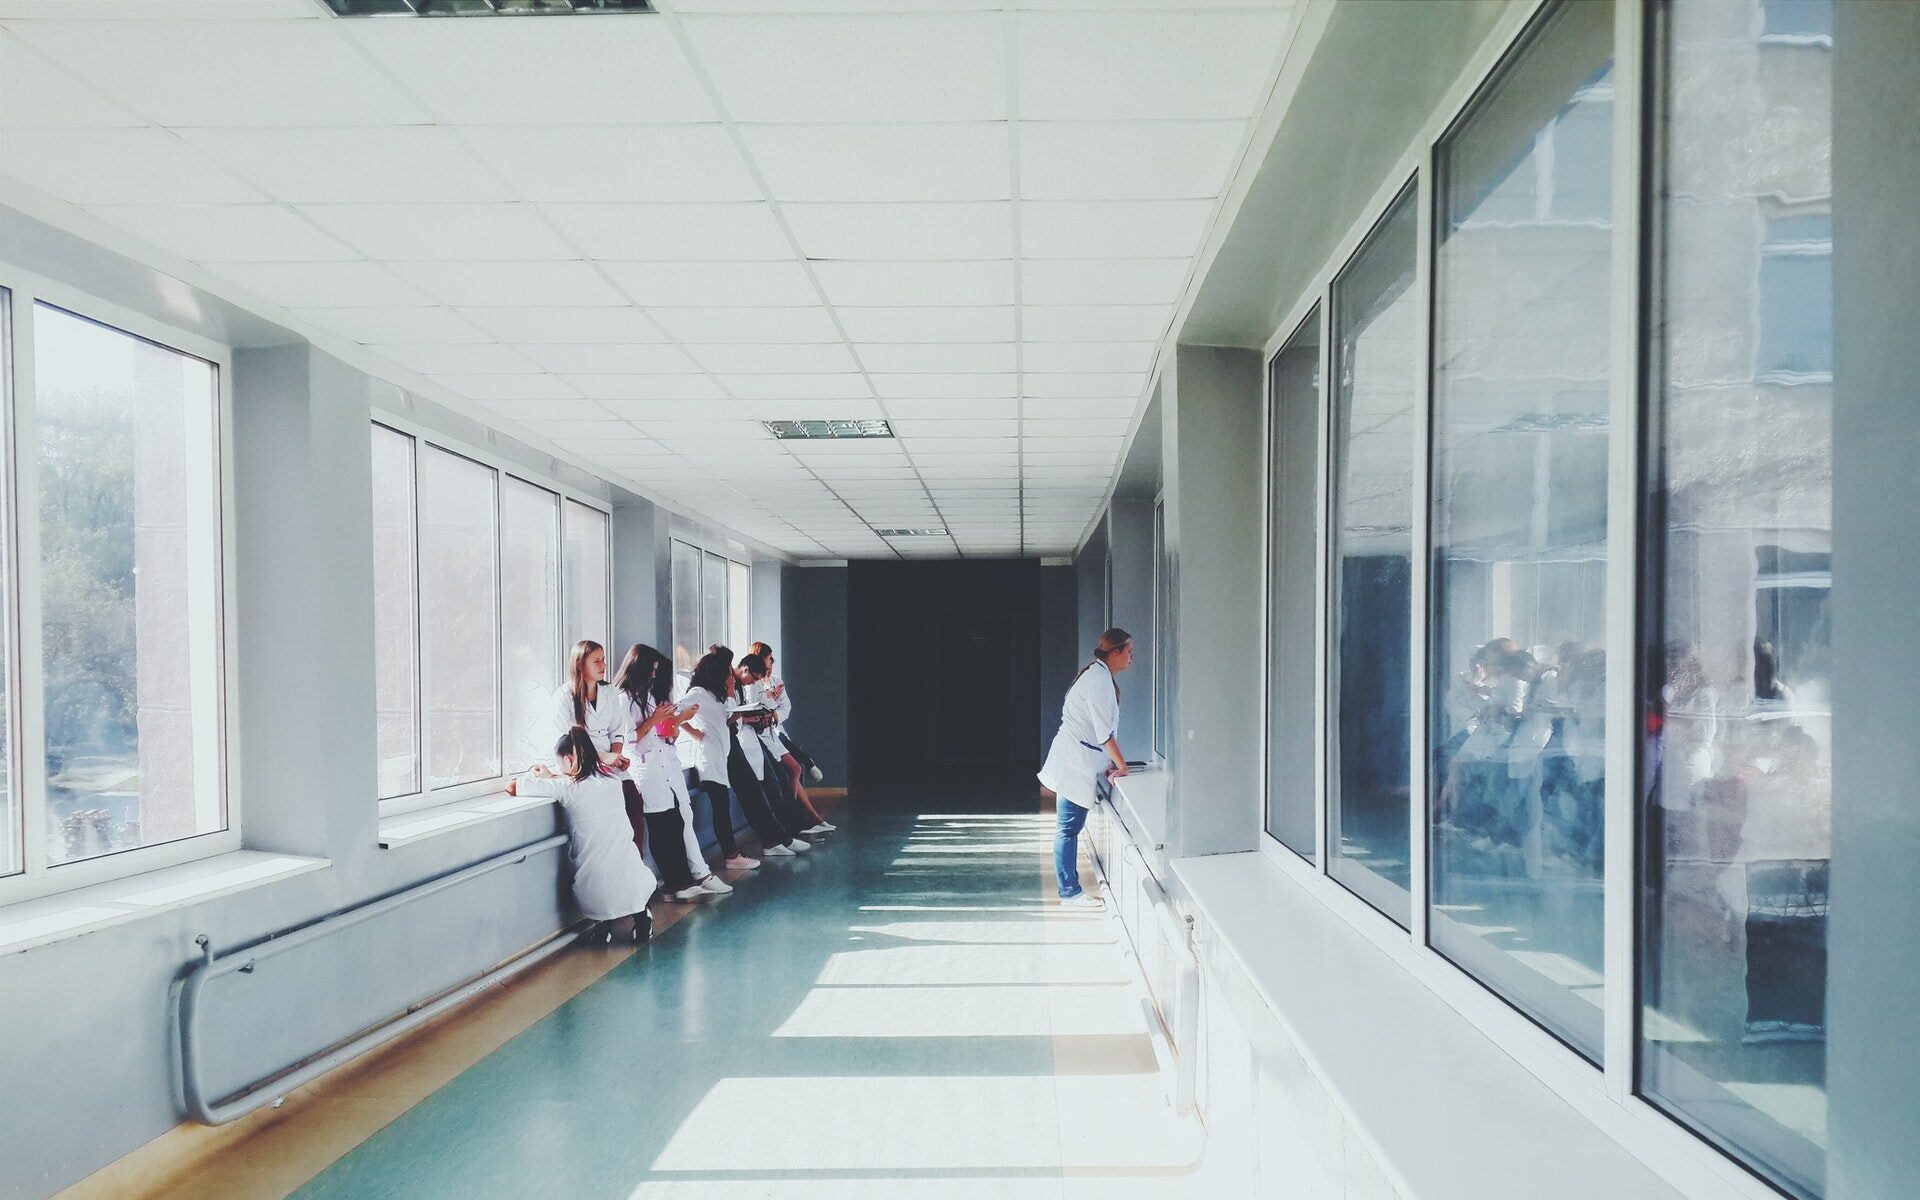 Hospital Disinfection Cleaning Service NYC